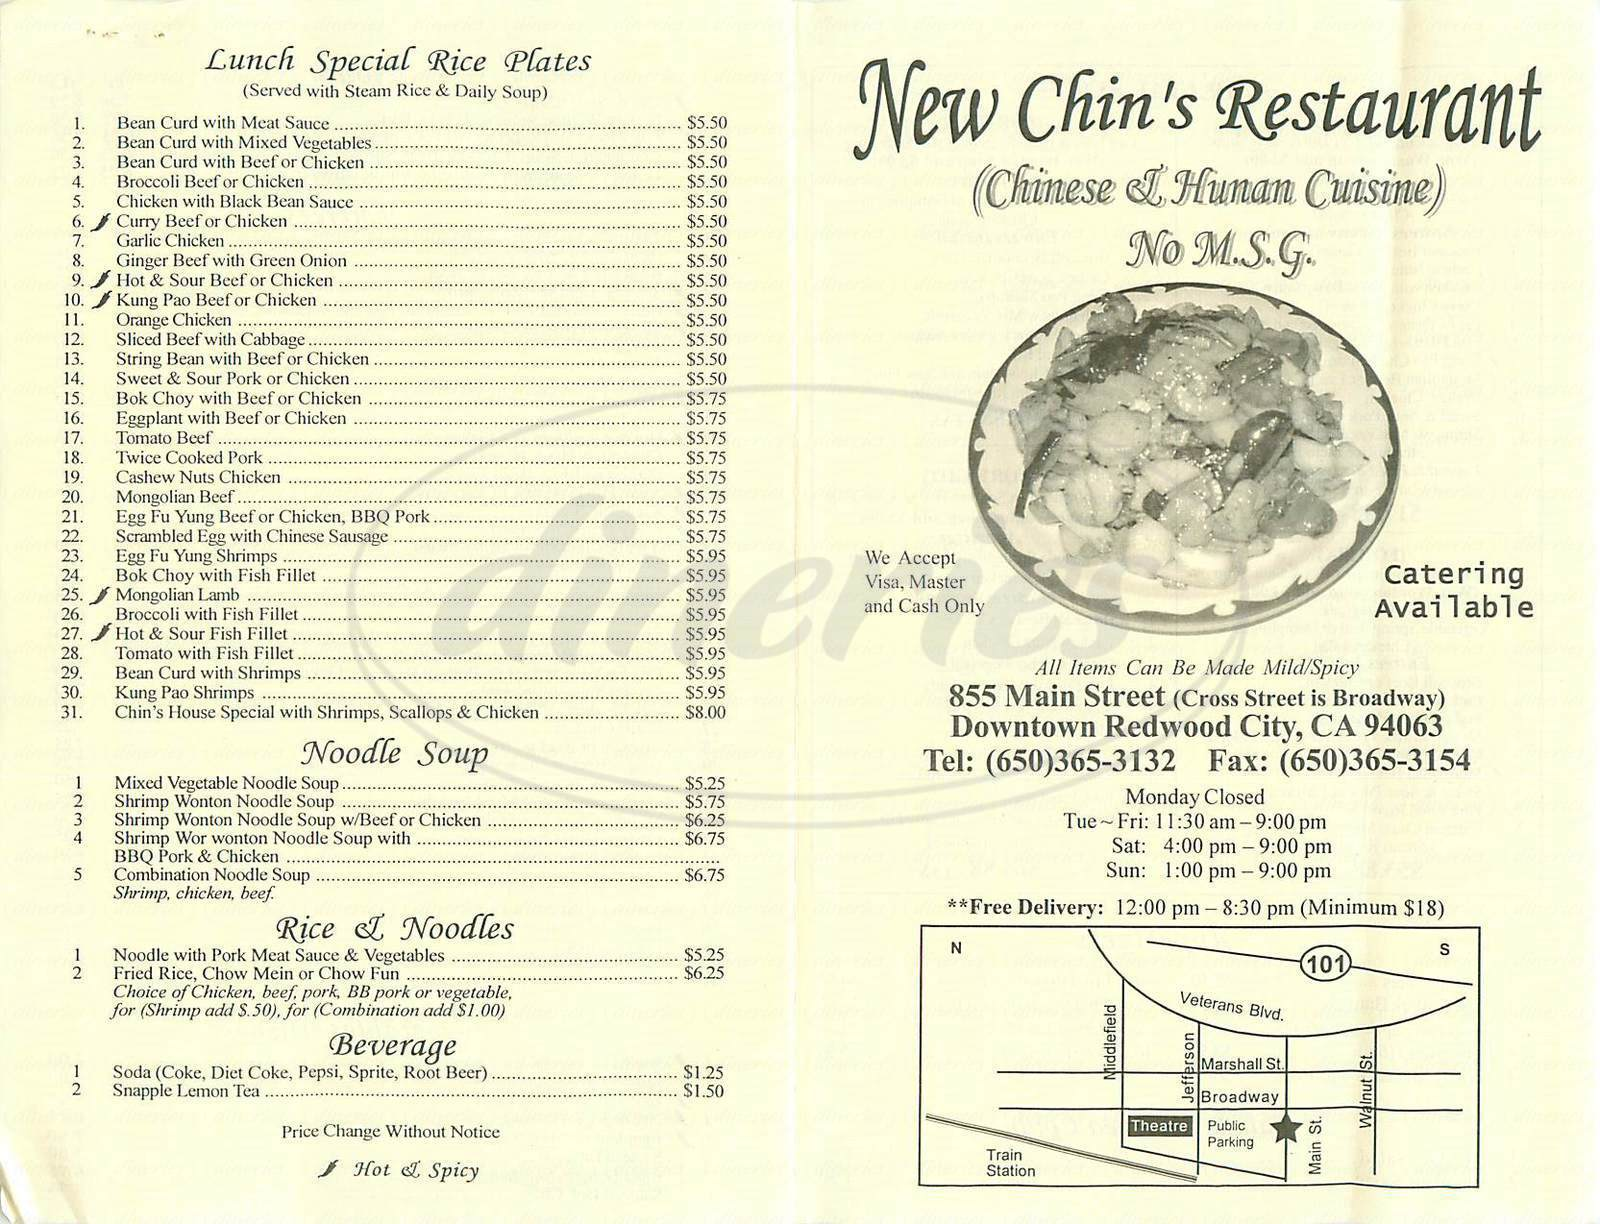 menu for New Chin's Restaurant